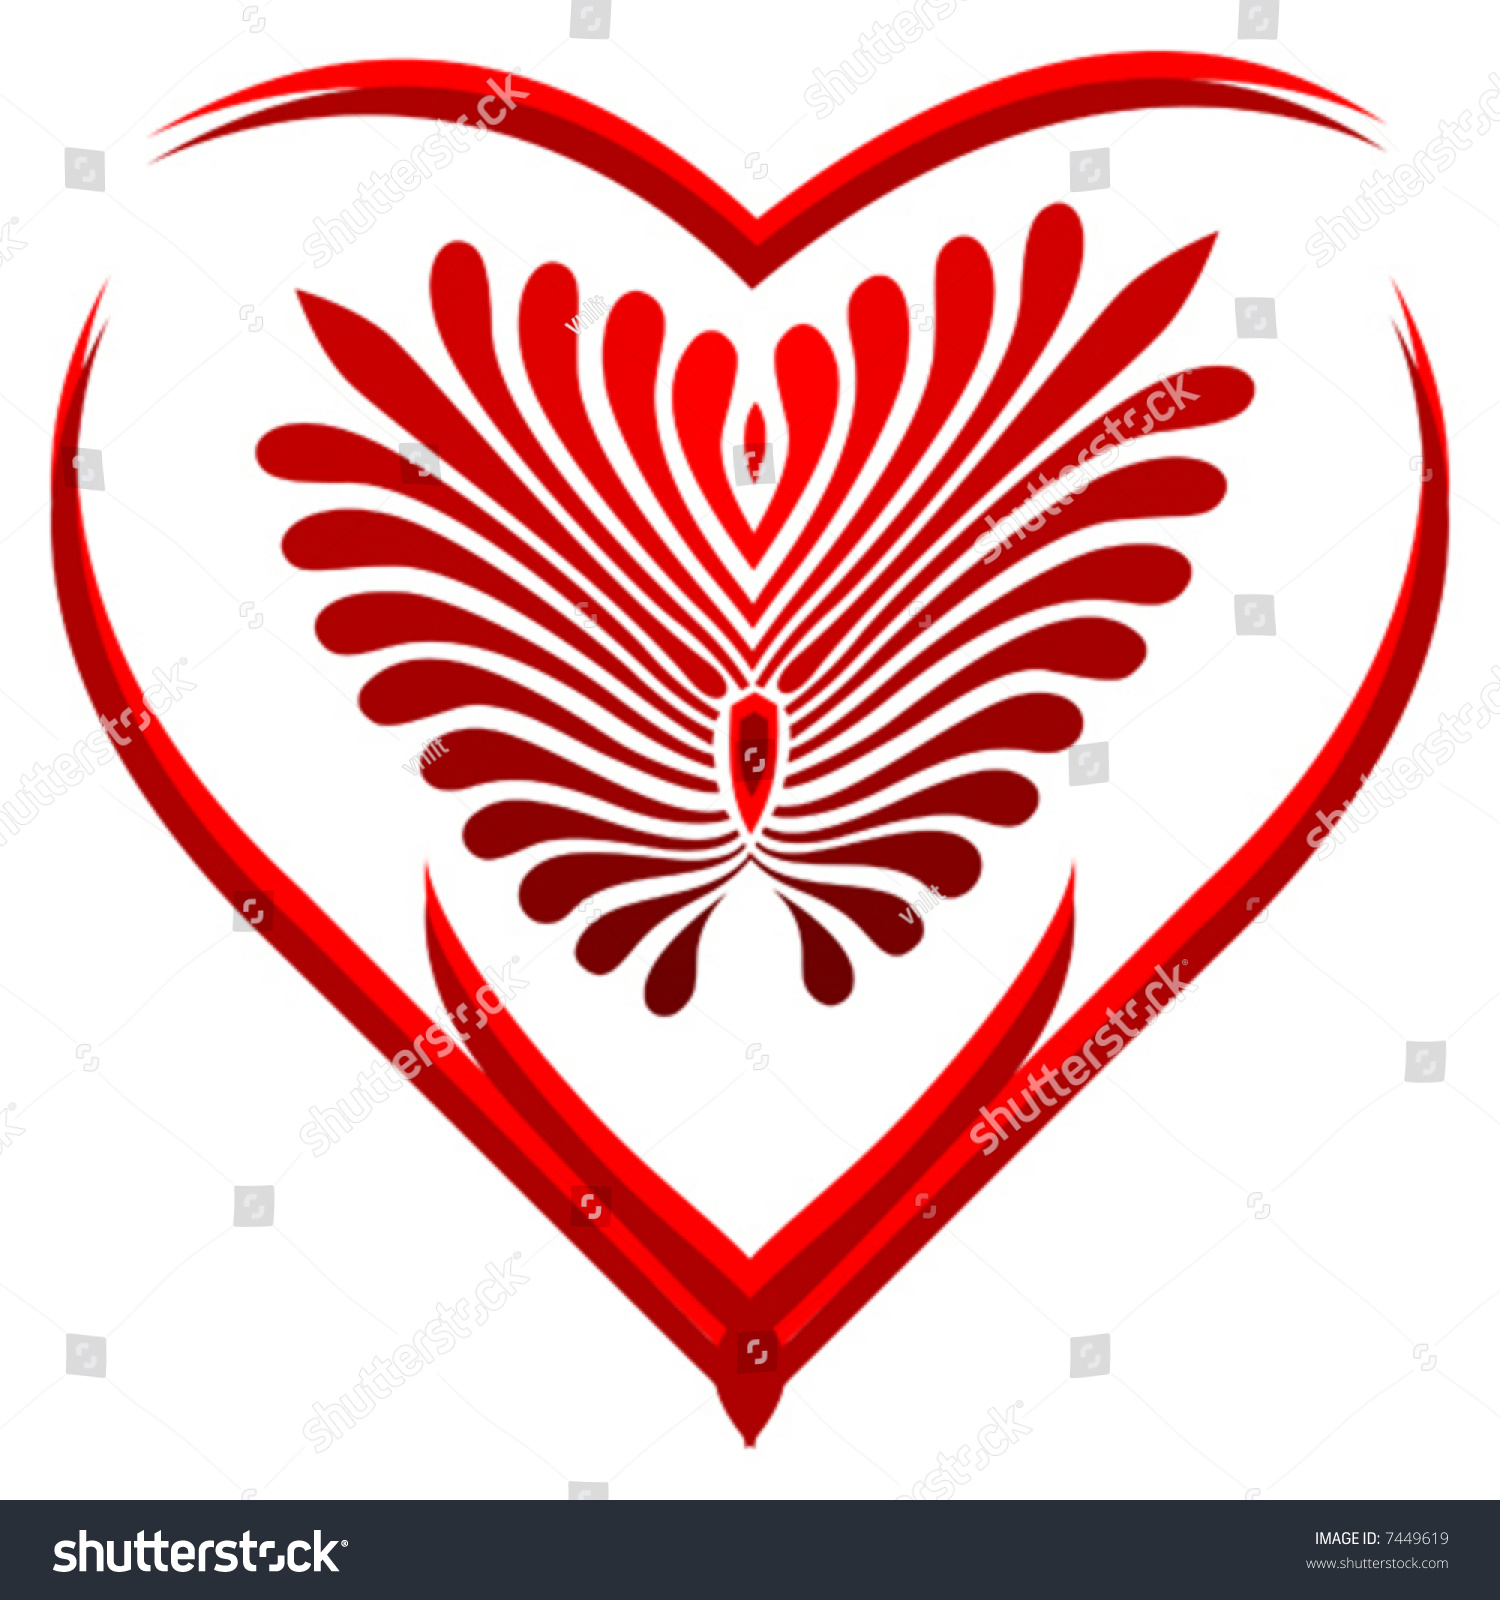 Shape Of Heart With Pattern Inside Stock Vector